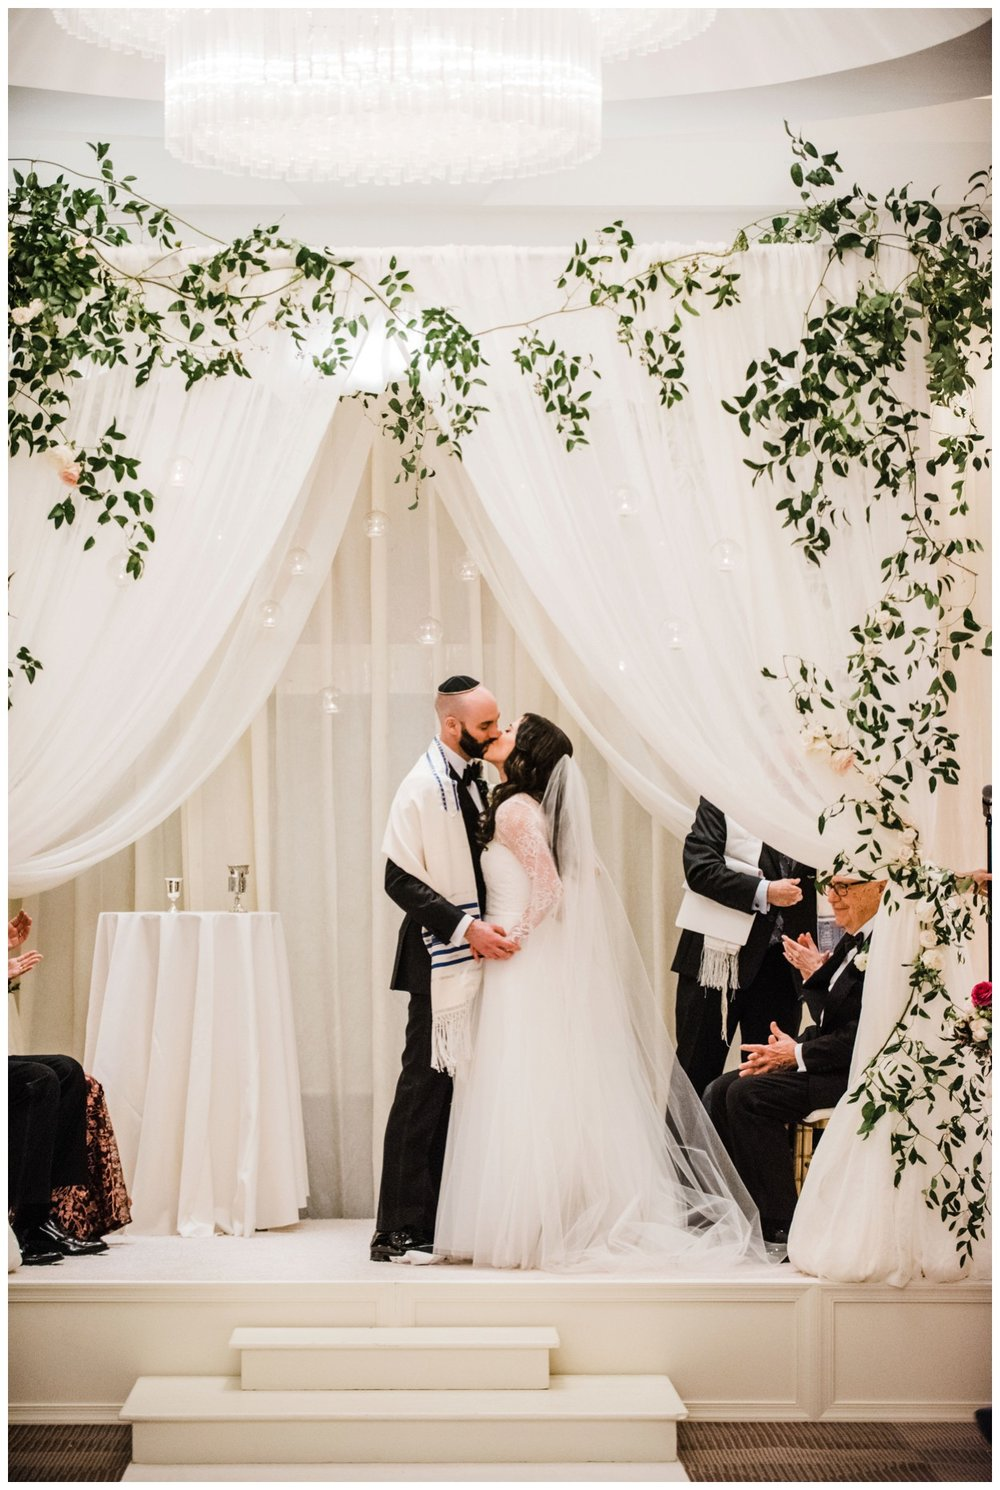 Spring Wedding in Shades of Pink at the Park Hyatt Washington DC by fine art wedding photographer Lissa Ryan Photography Jewish wedding ceremony